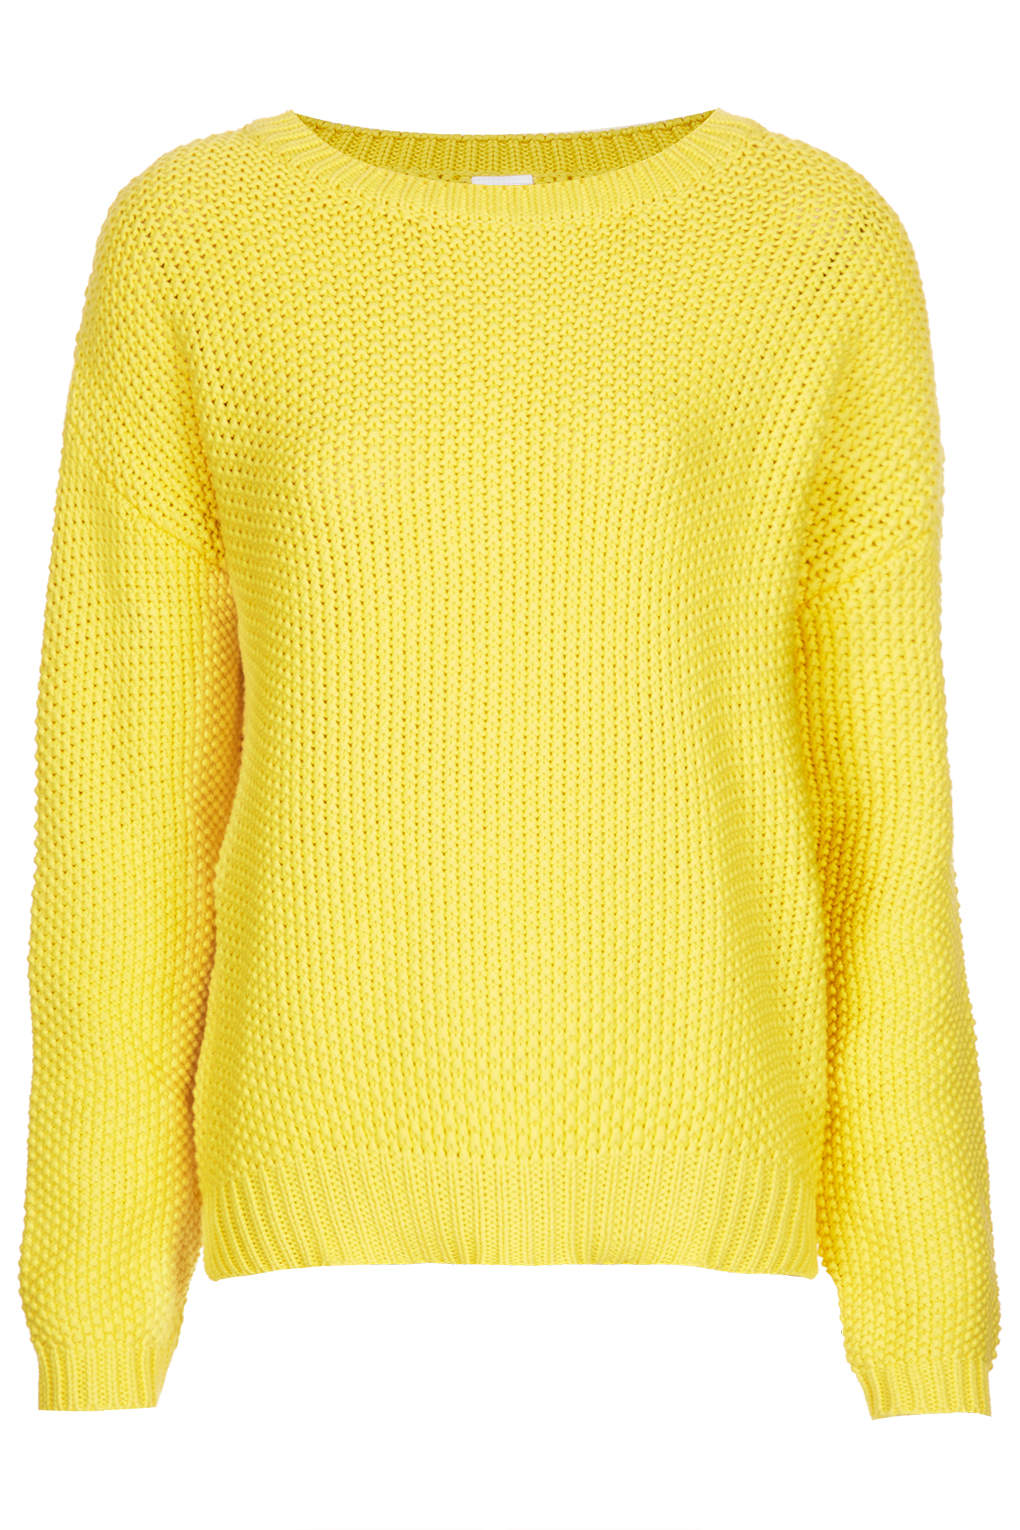 yellow sweater topshop beehive sweater nvuvavx